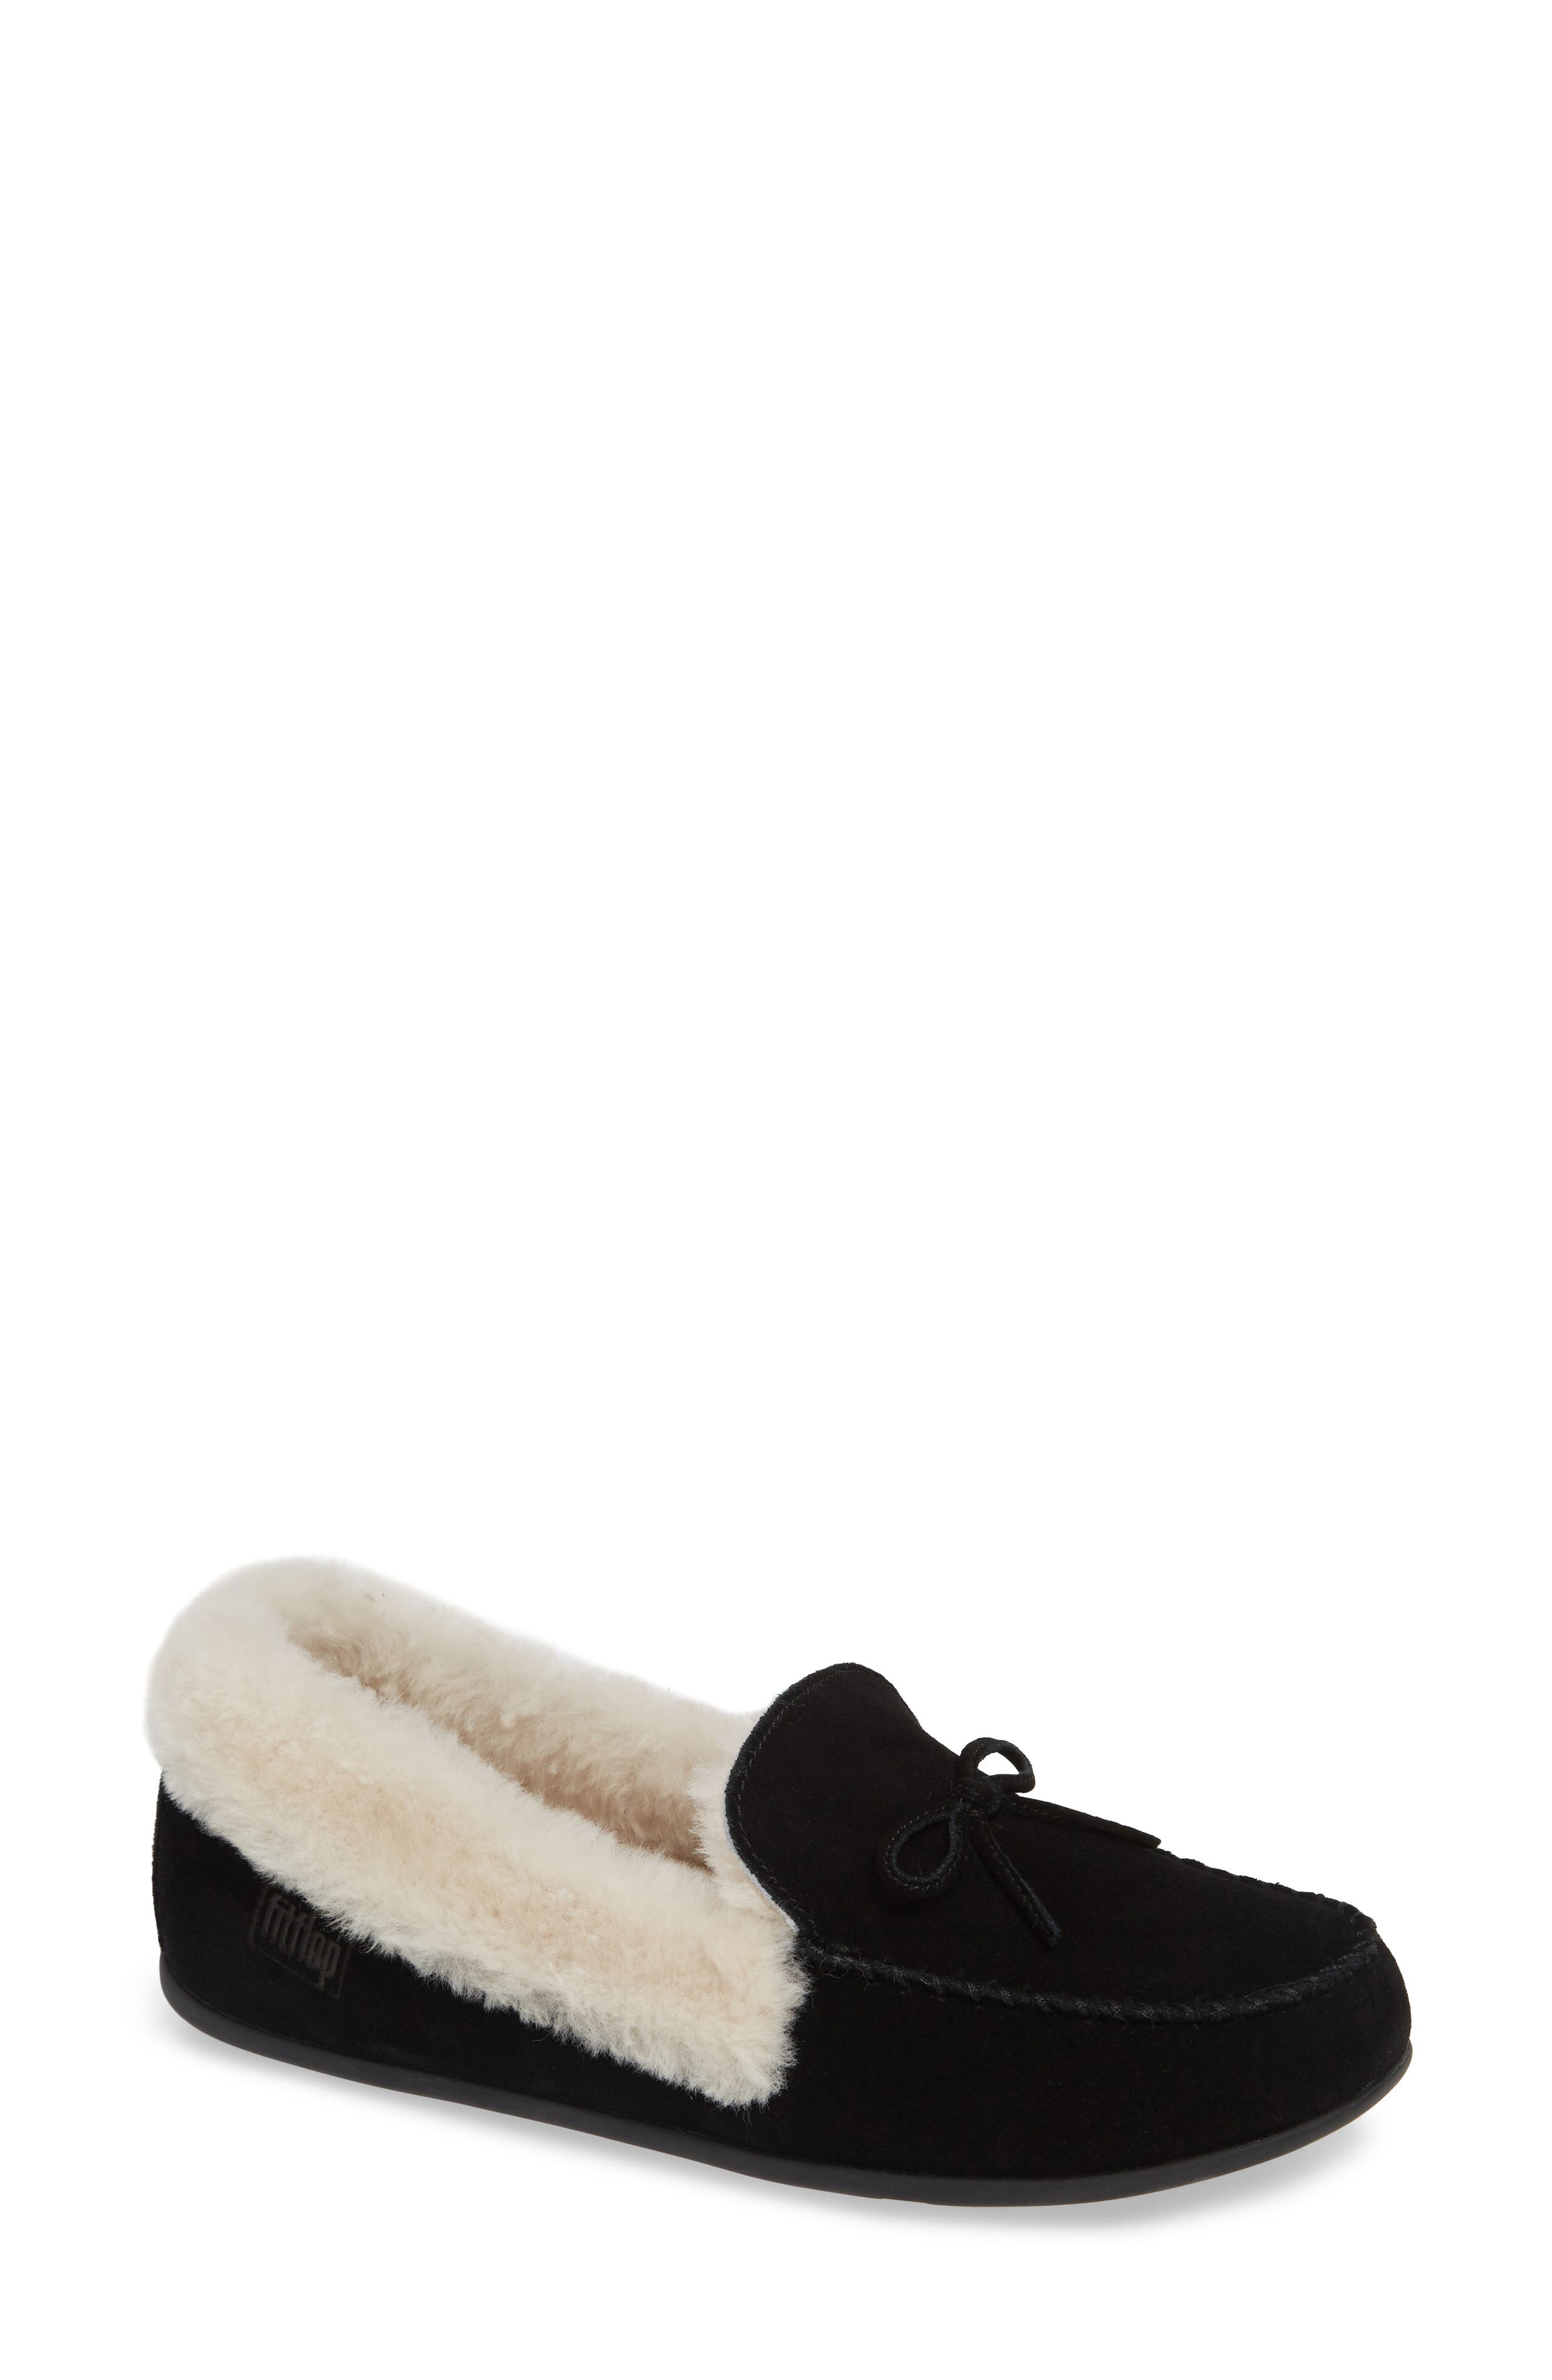 Clara Genuine Shearling Lined Moccasin,                             Main thumbnail 1, color,                             BLACK SUEDE